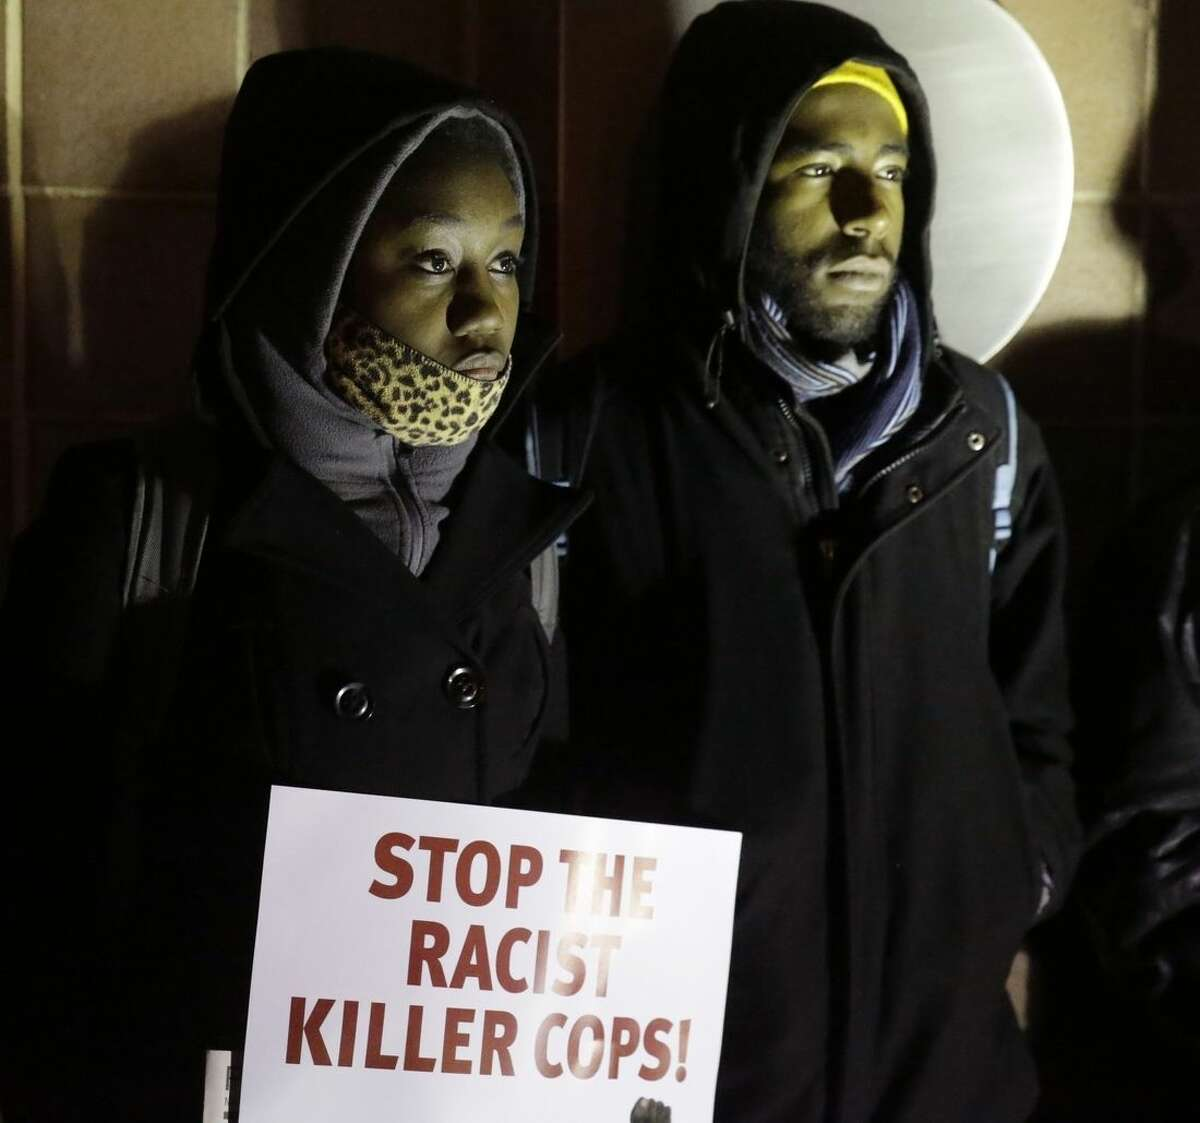 Monet Felton, left, and Jo Schaffer gather outside the Chicago Police headquarters for a protest before the announcement of the grand jury decision not to indict police officer Darren Wilson in the fatal shooting of Michael Brown Monday, Nov. 24, 2014, in Chicago. (AP Photo/Charles Rex Arbogast)